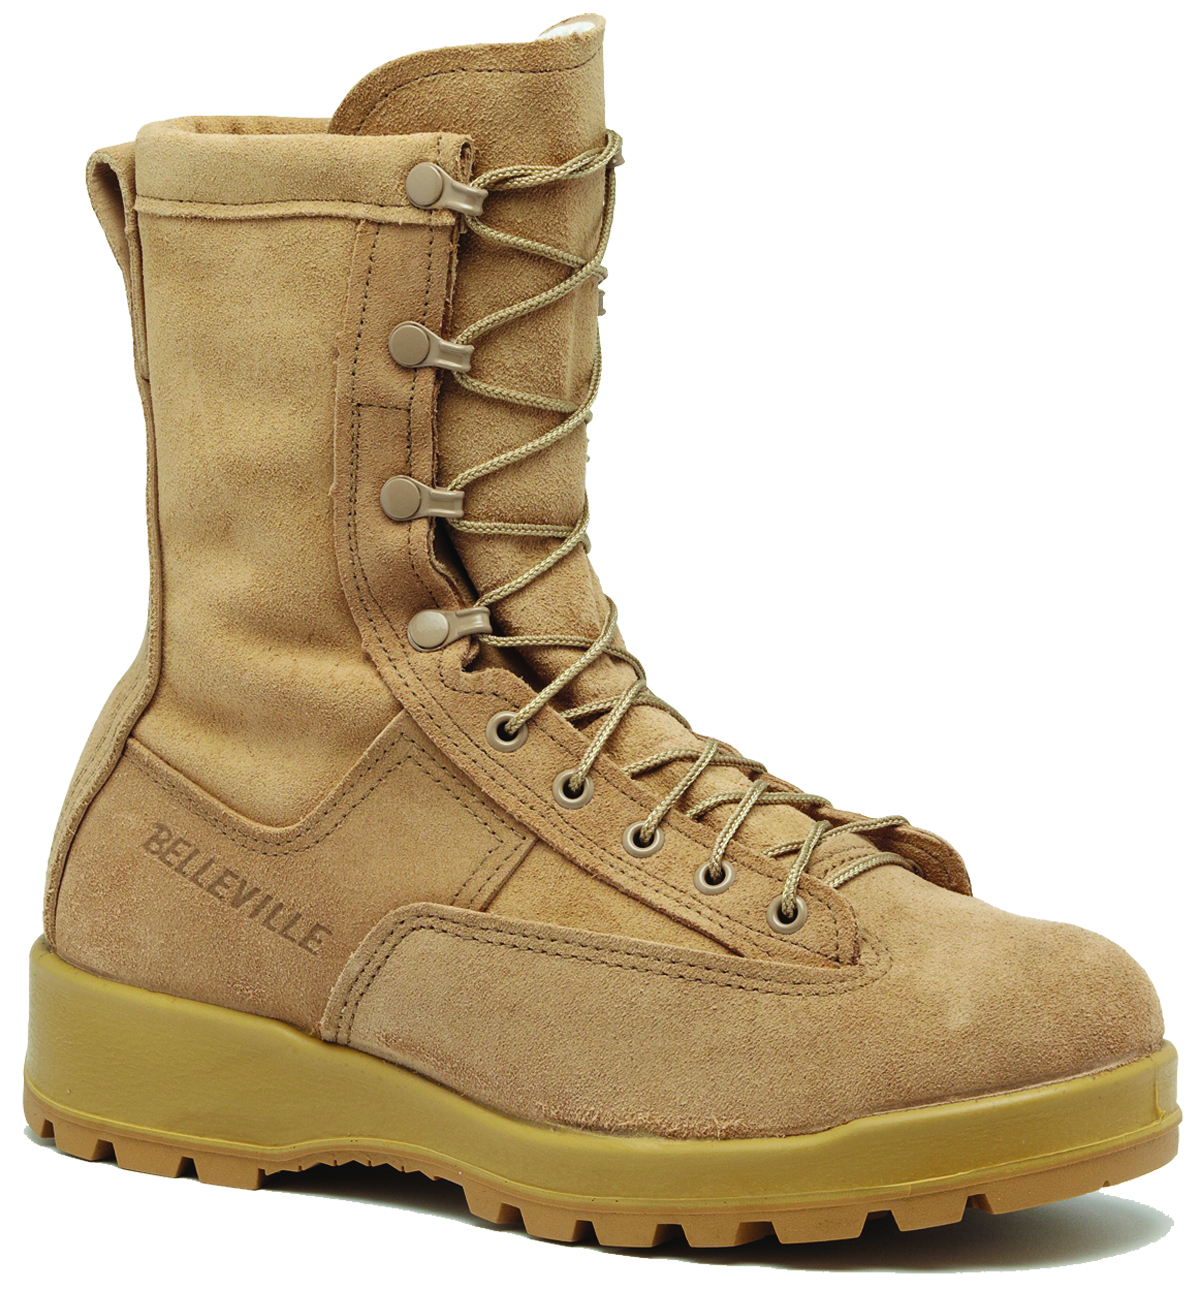 Waterproof Military Boots on Sale - Free Size Exchanges and Shipping